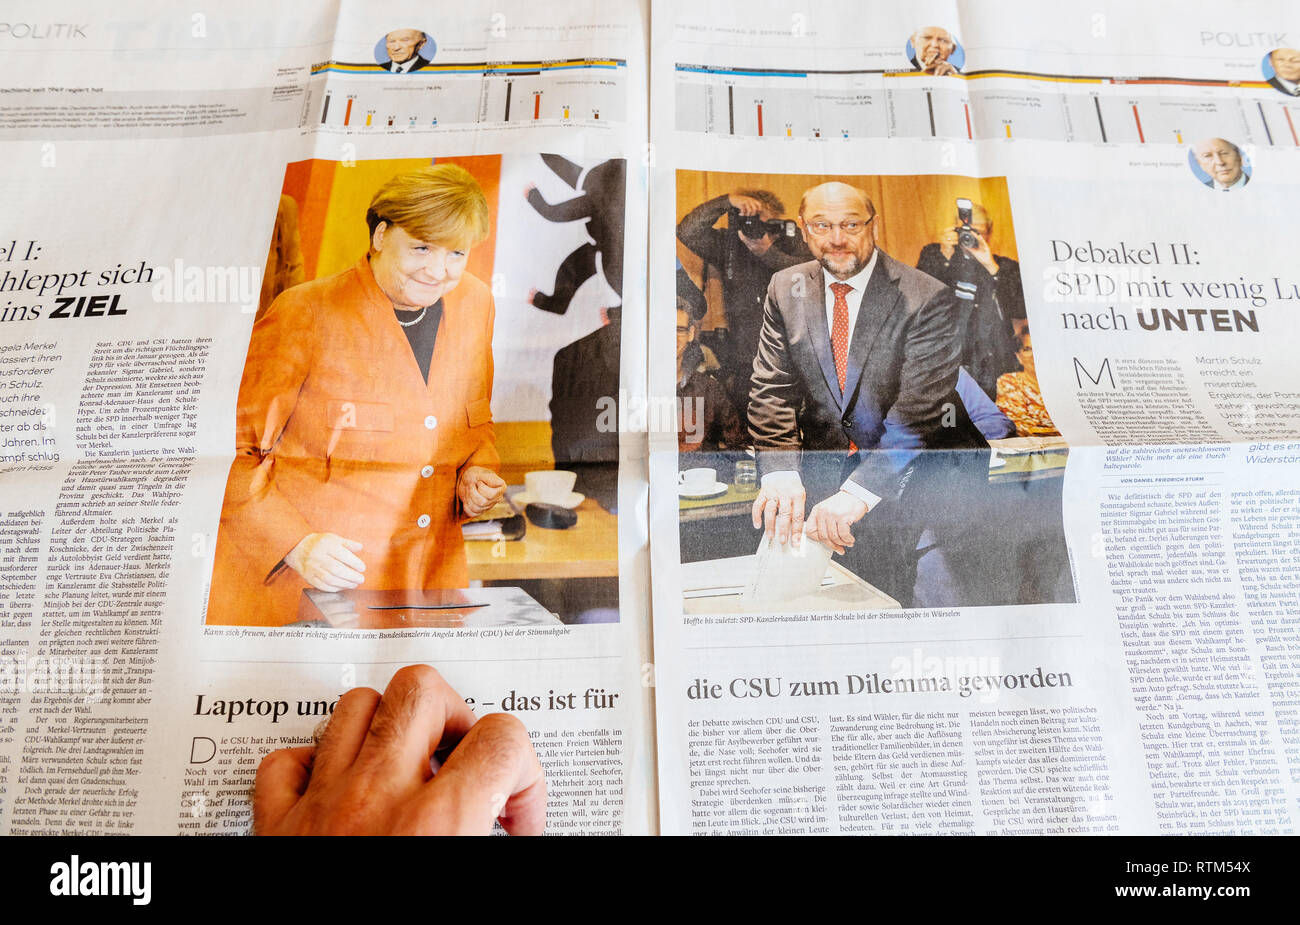 PARIS, FRANCE - SEP 25, 2017: International newspaper with portrait of Angela Merkel and Martin Schulz after voting - election in Germany for the Chancellor of Germany, the head of the federal government - Stock Image